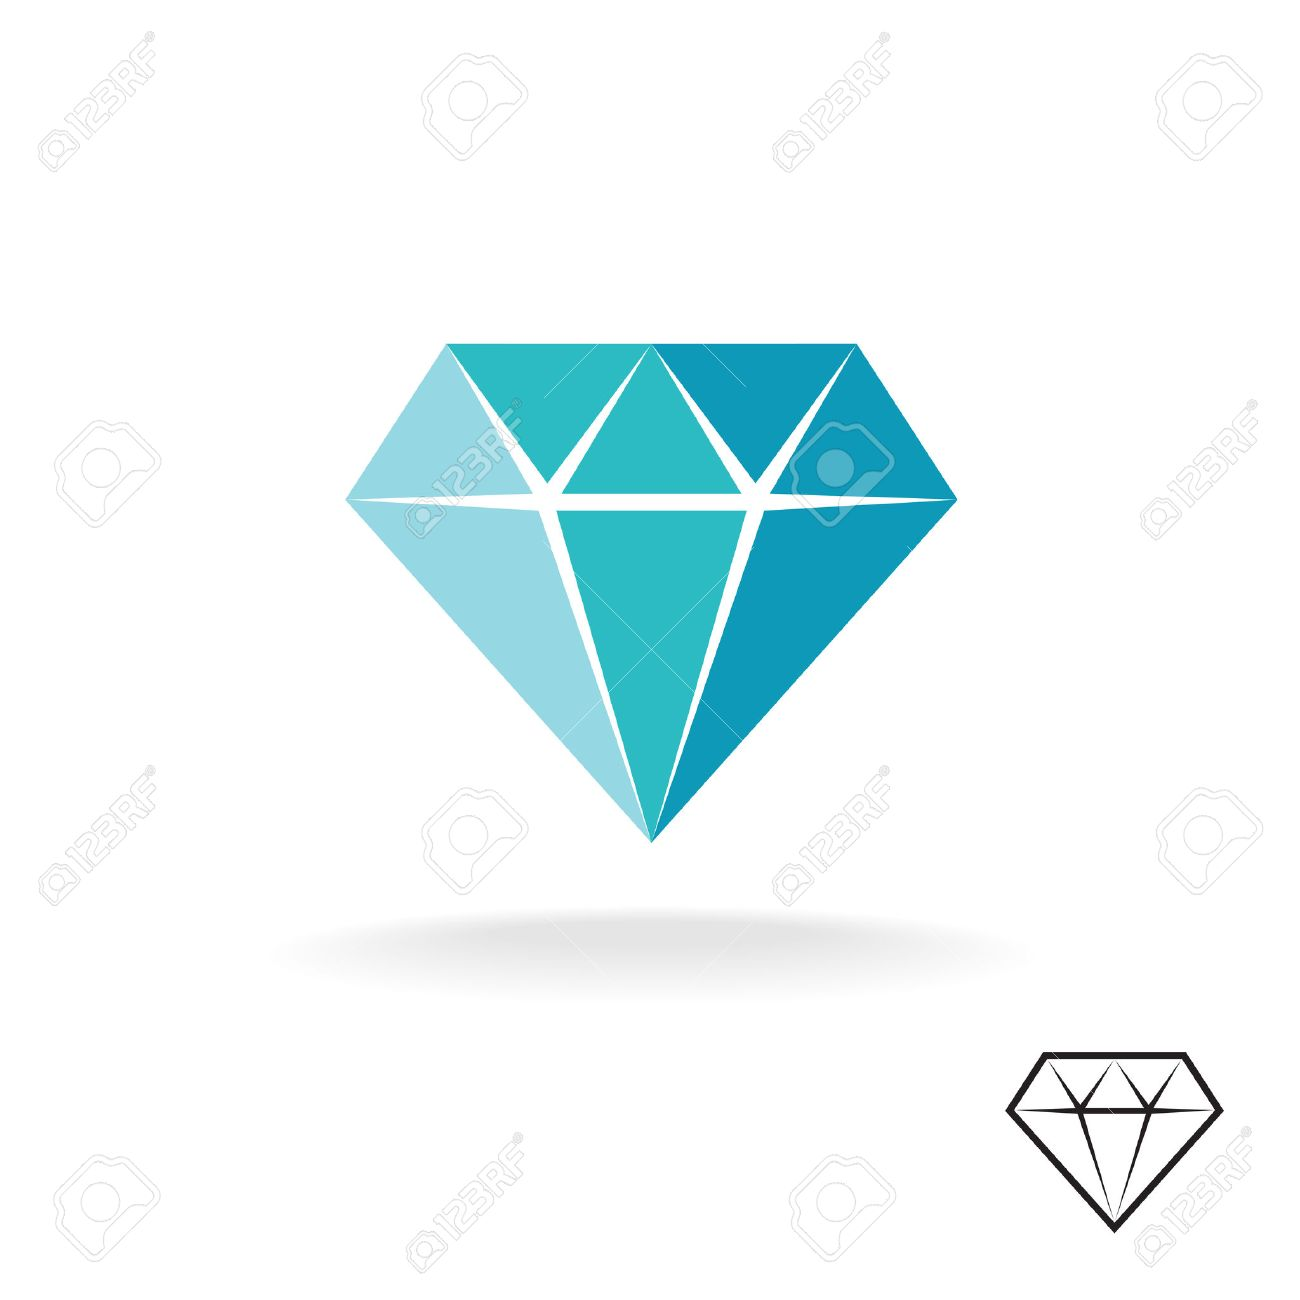 diamond kiss free material download logo